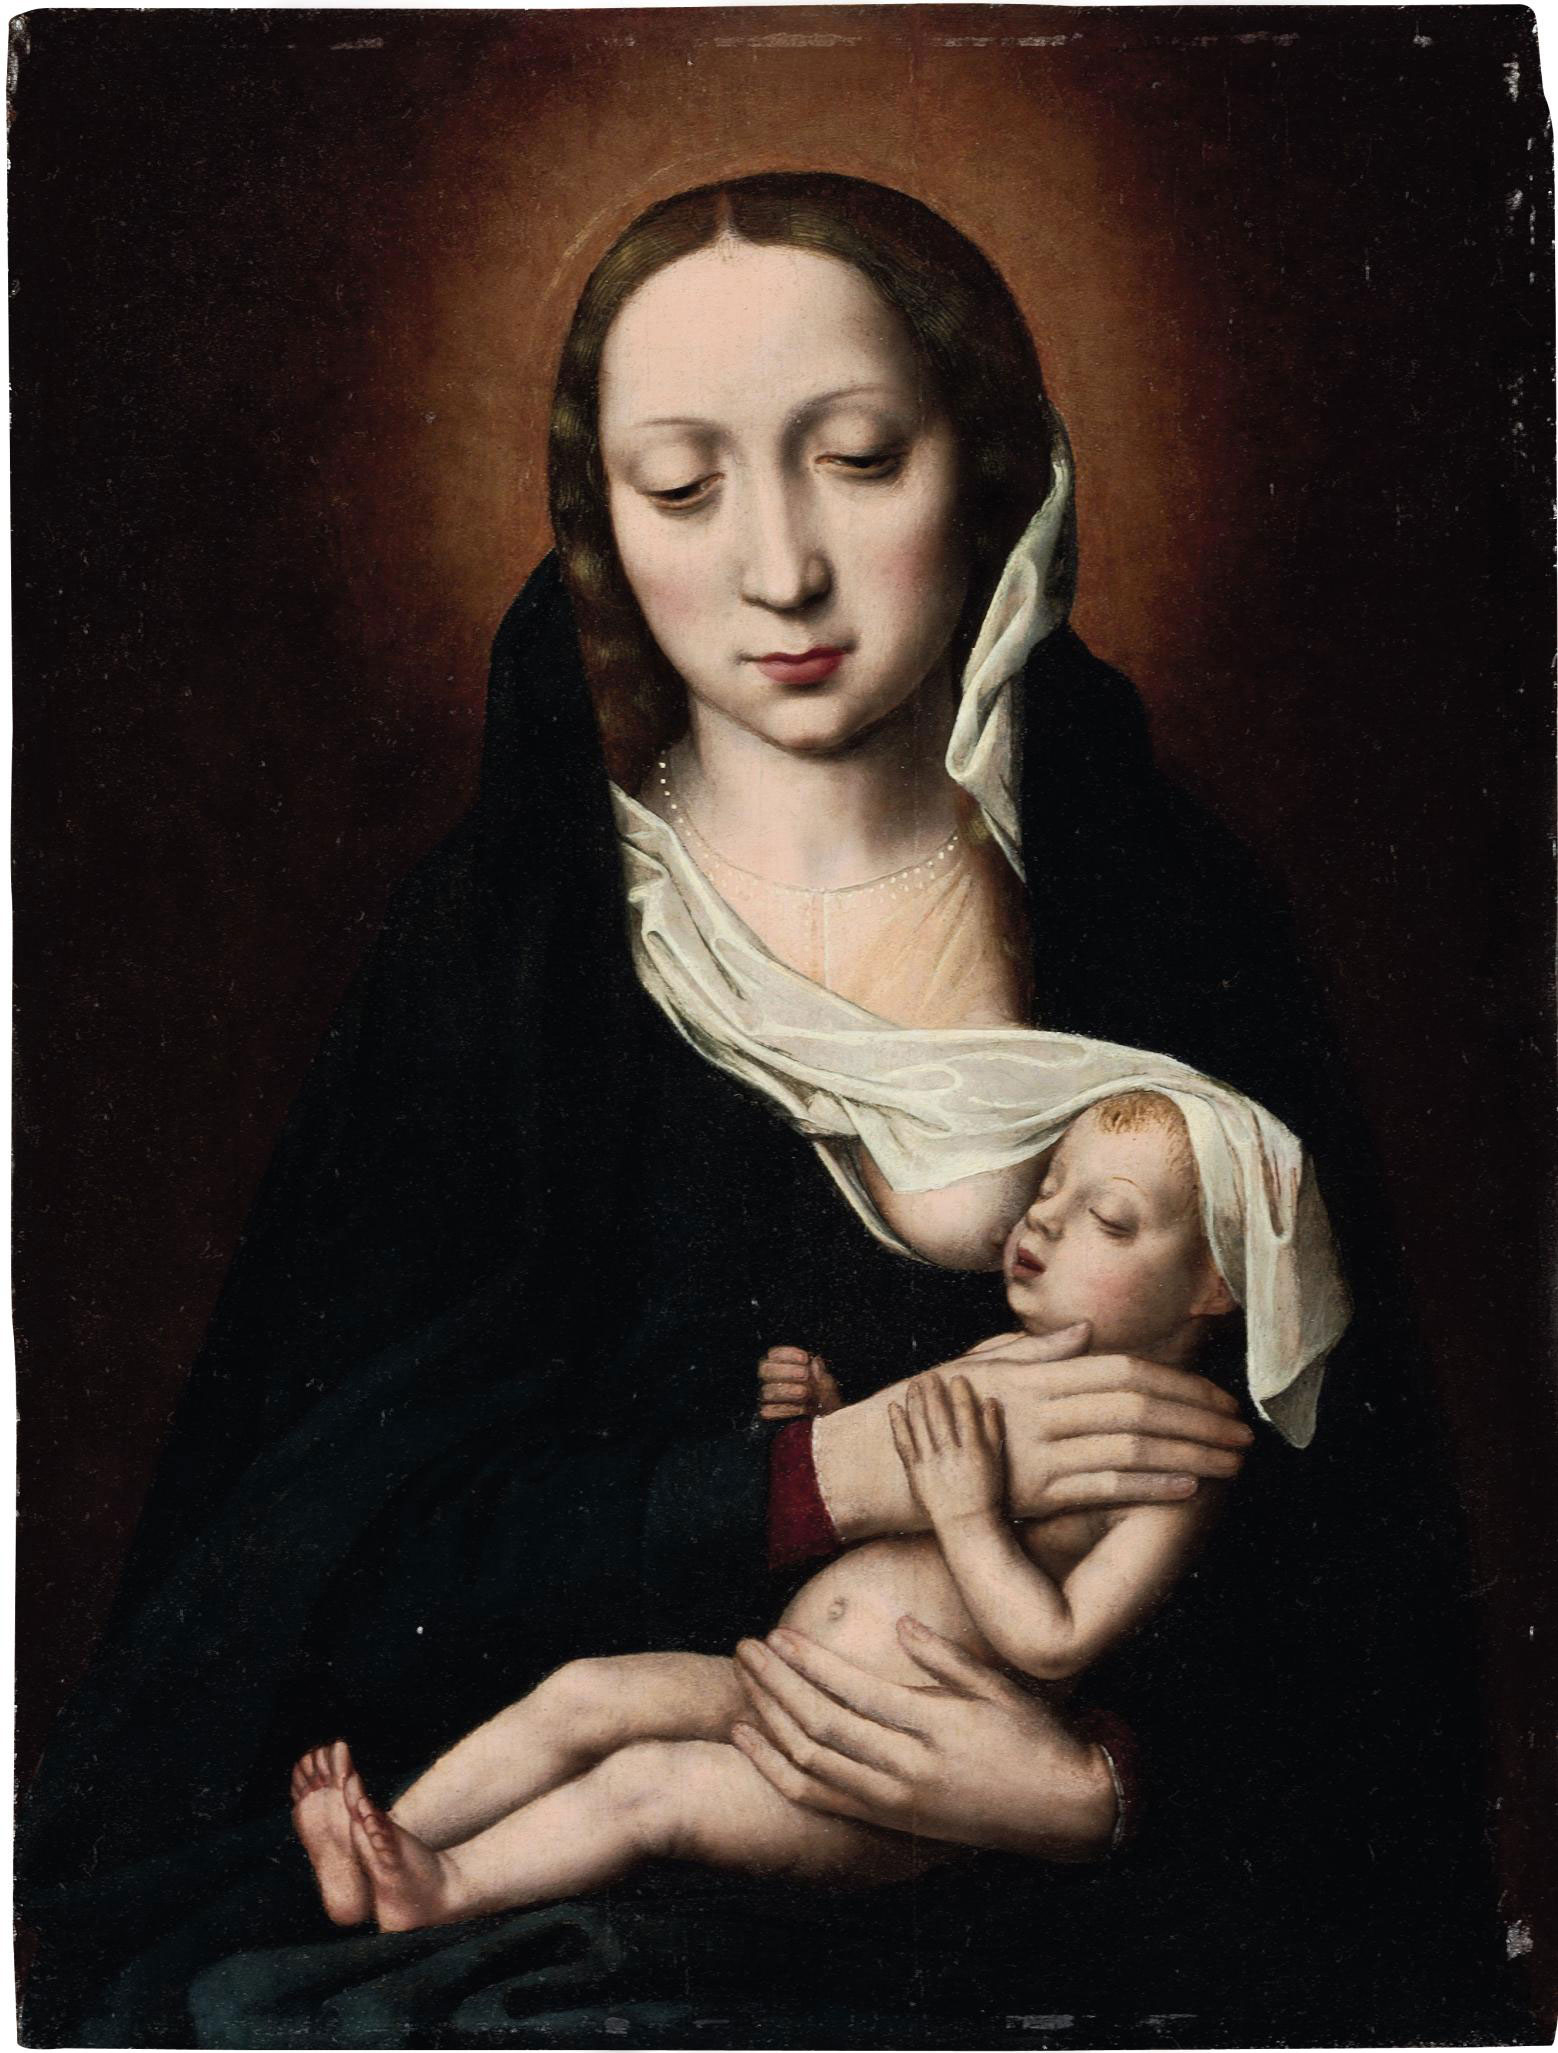 The Holy Virgin and Child